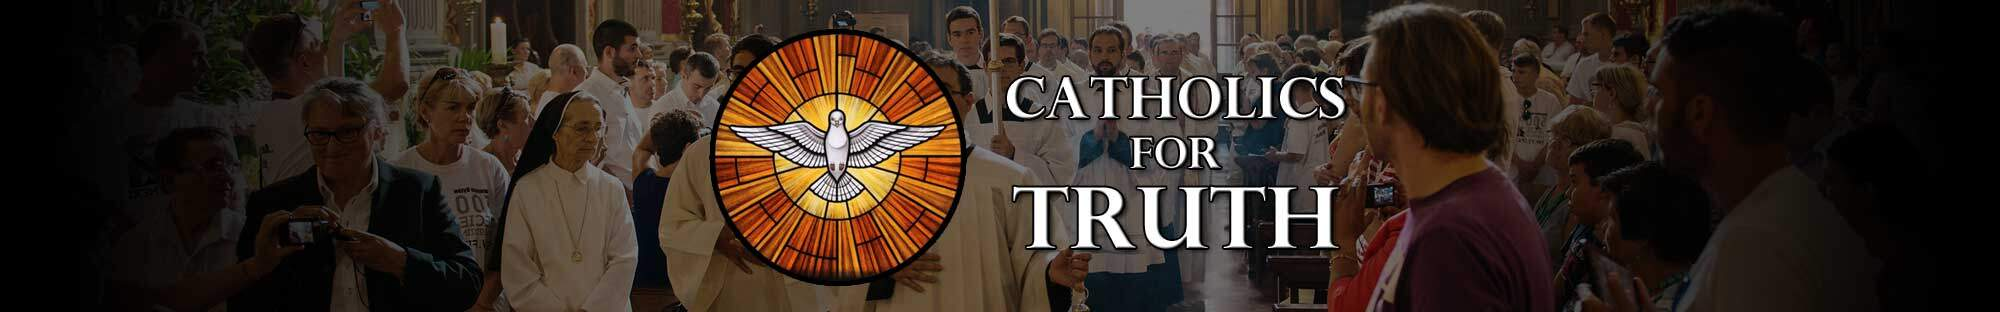 Catholics for Truth